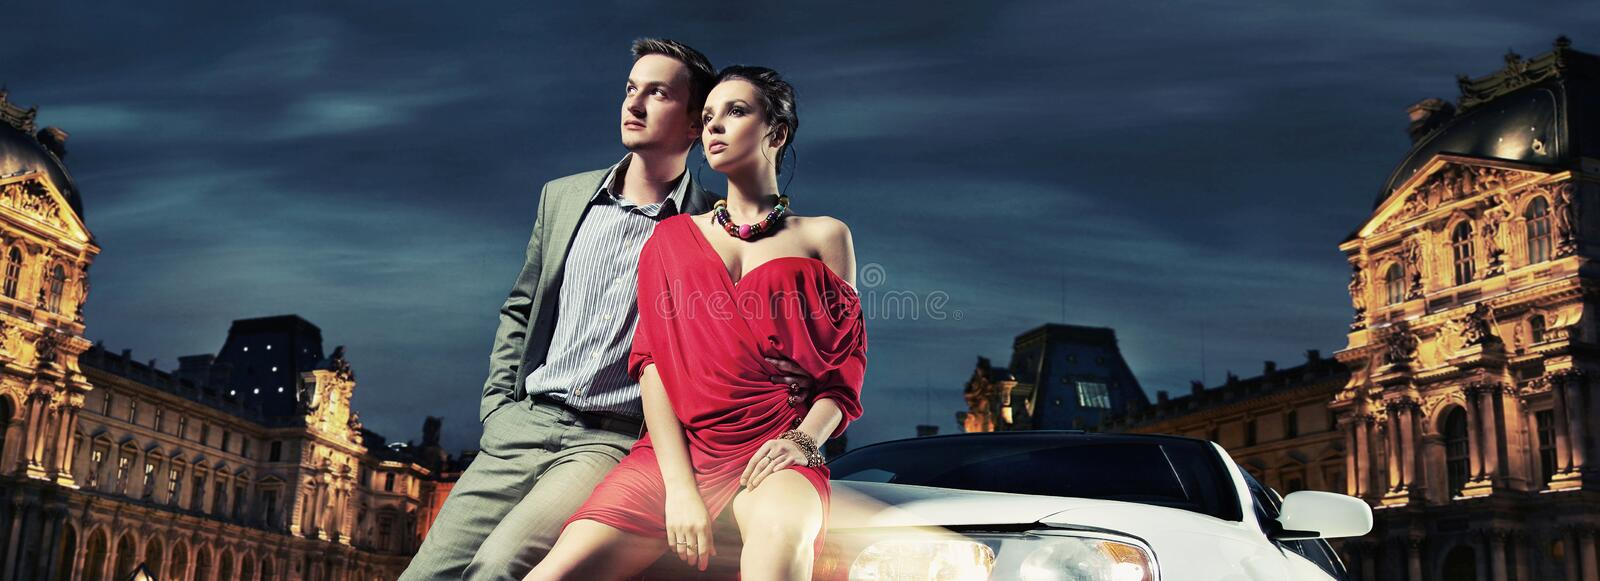 Download Beautiful Couple Sitting In A Limousine Stock Image - Image: 19827727